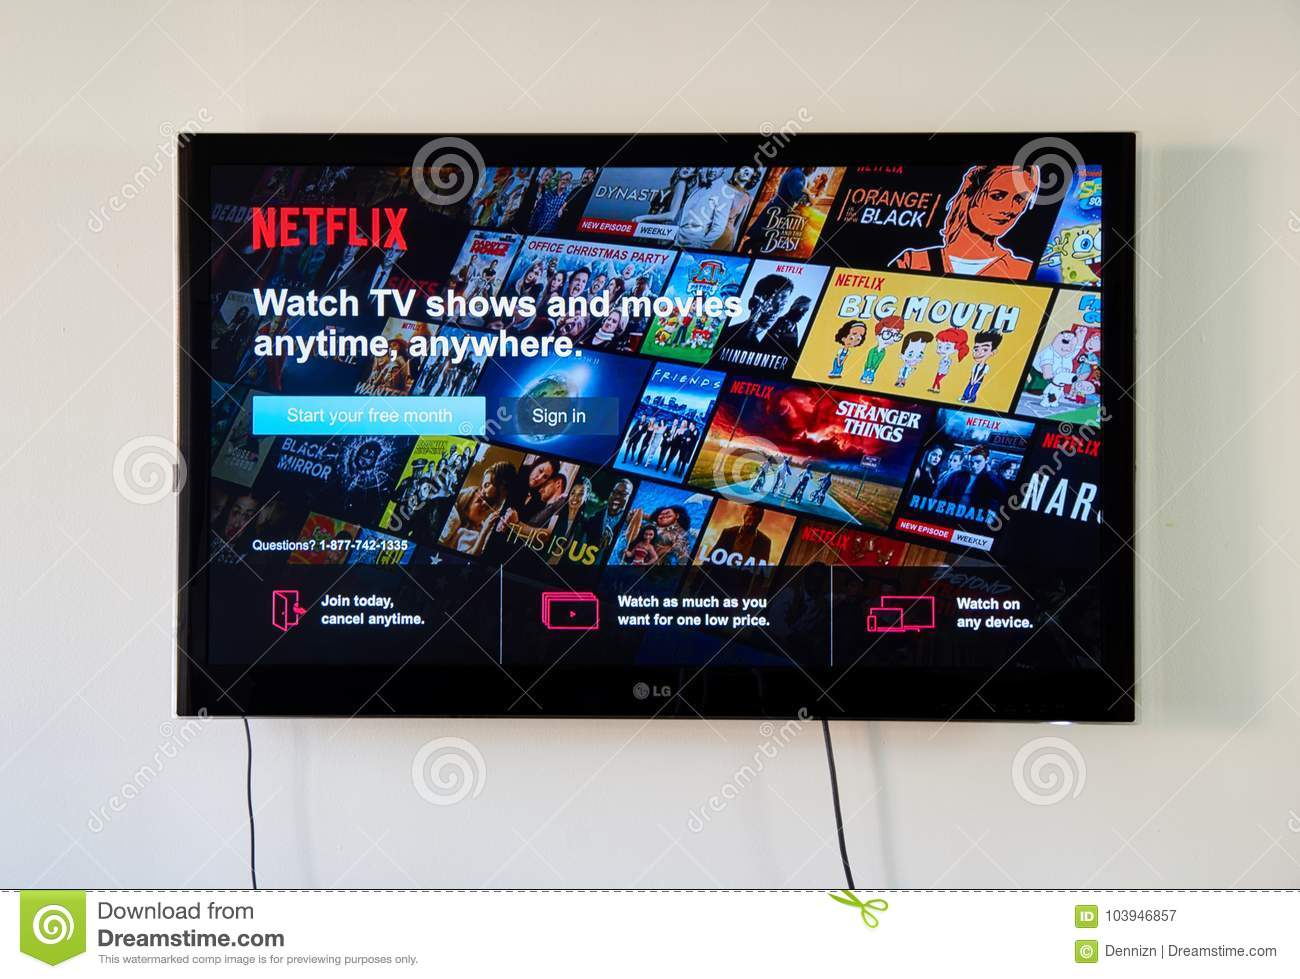 Netflix Sign In page on LG TV.